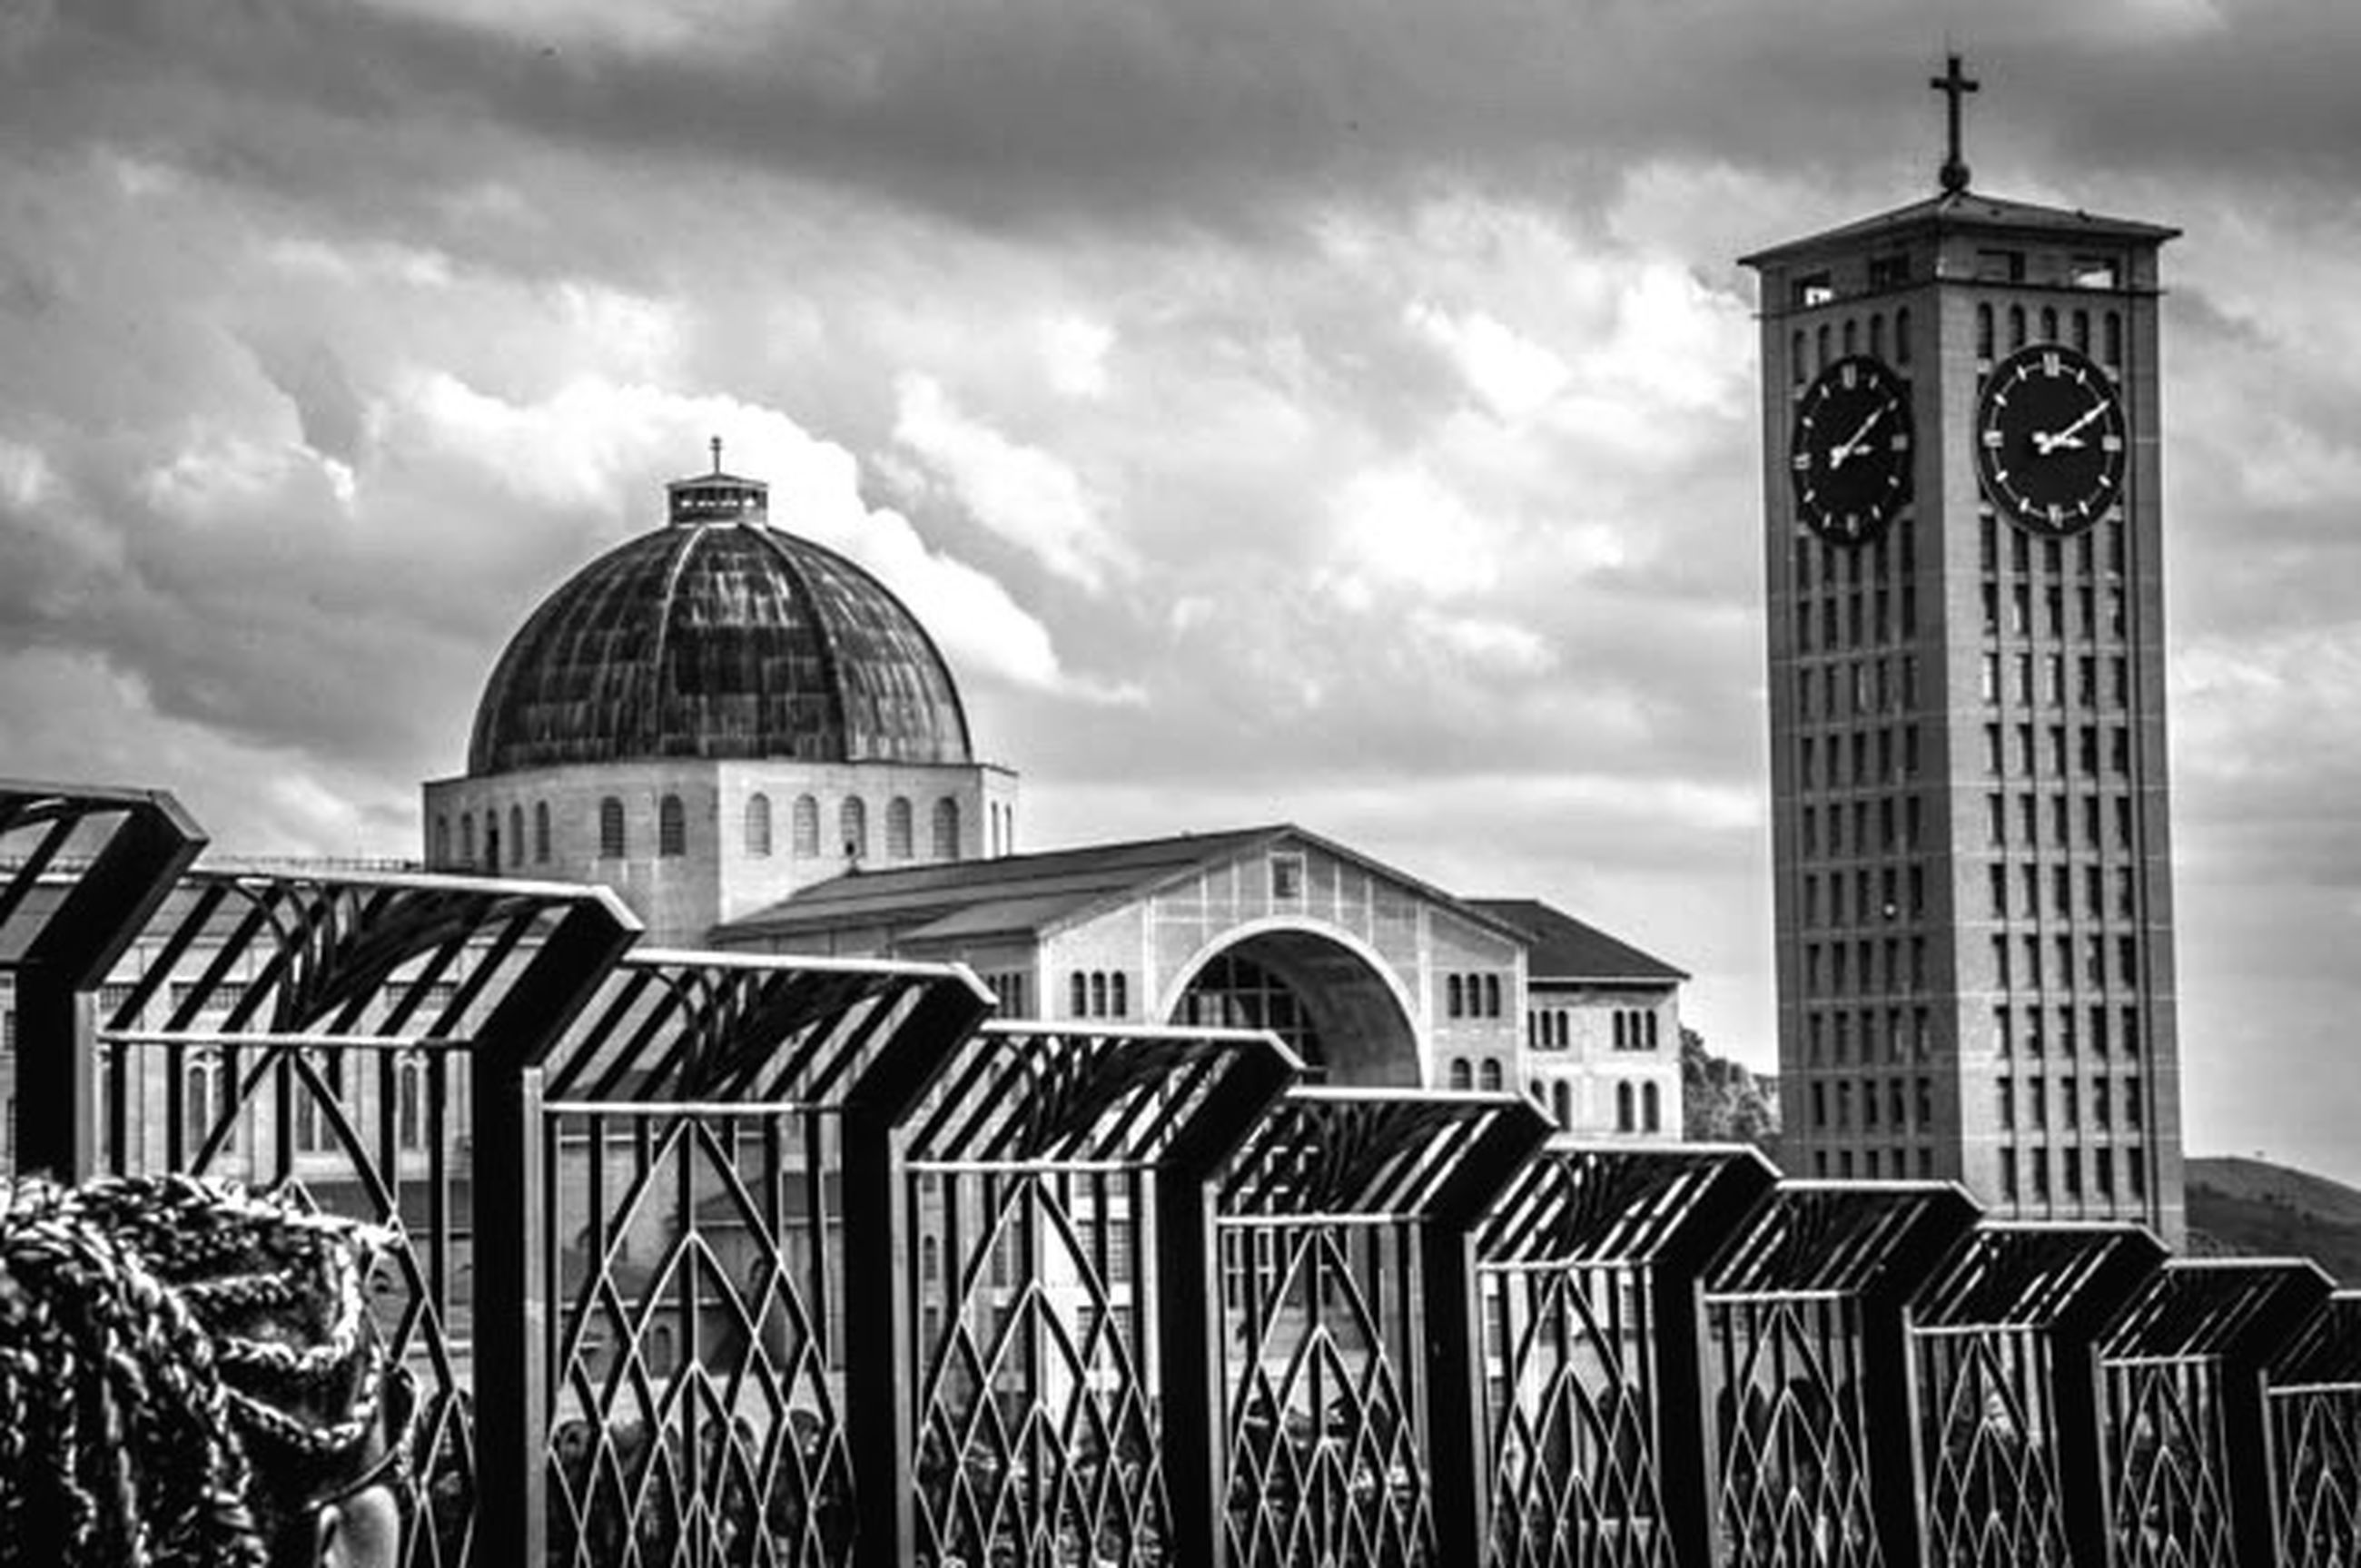 architecture, built structure, building exterior, sky, place of worship, cloud - sky, religion, dome, spirituality, cloudy, church, famous place, travel destinations, cloud, tower, tourism, travel, outdoors